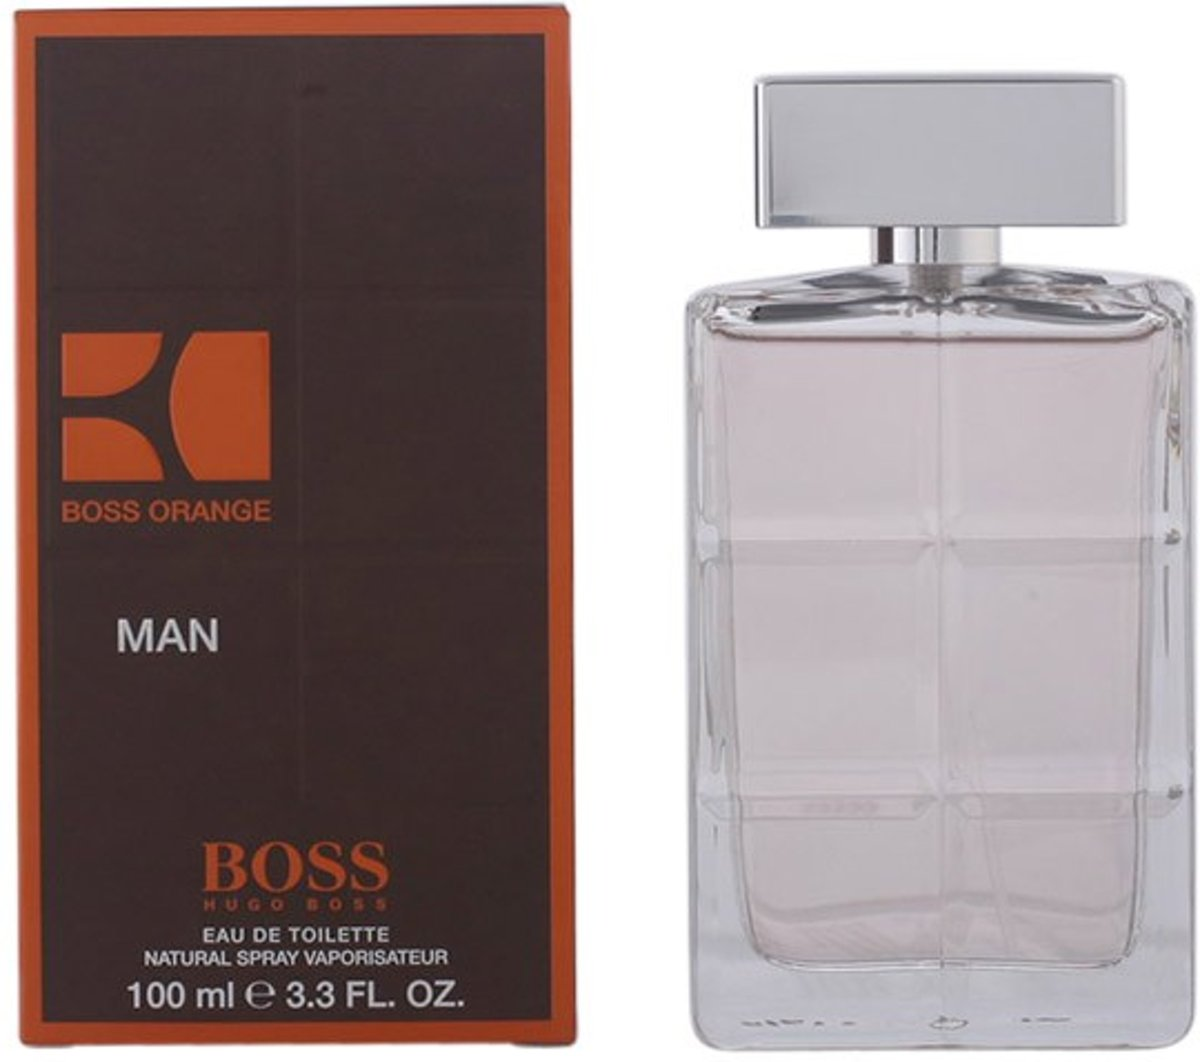 MULTI BUNDEL 2 stuks BOSS ORANGE MAN Eau de Toilette Spray 100 ml